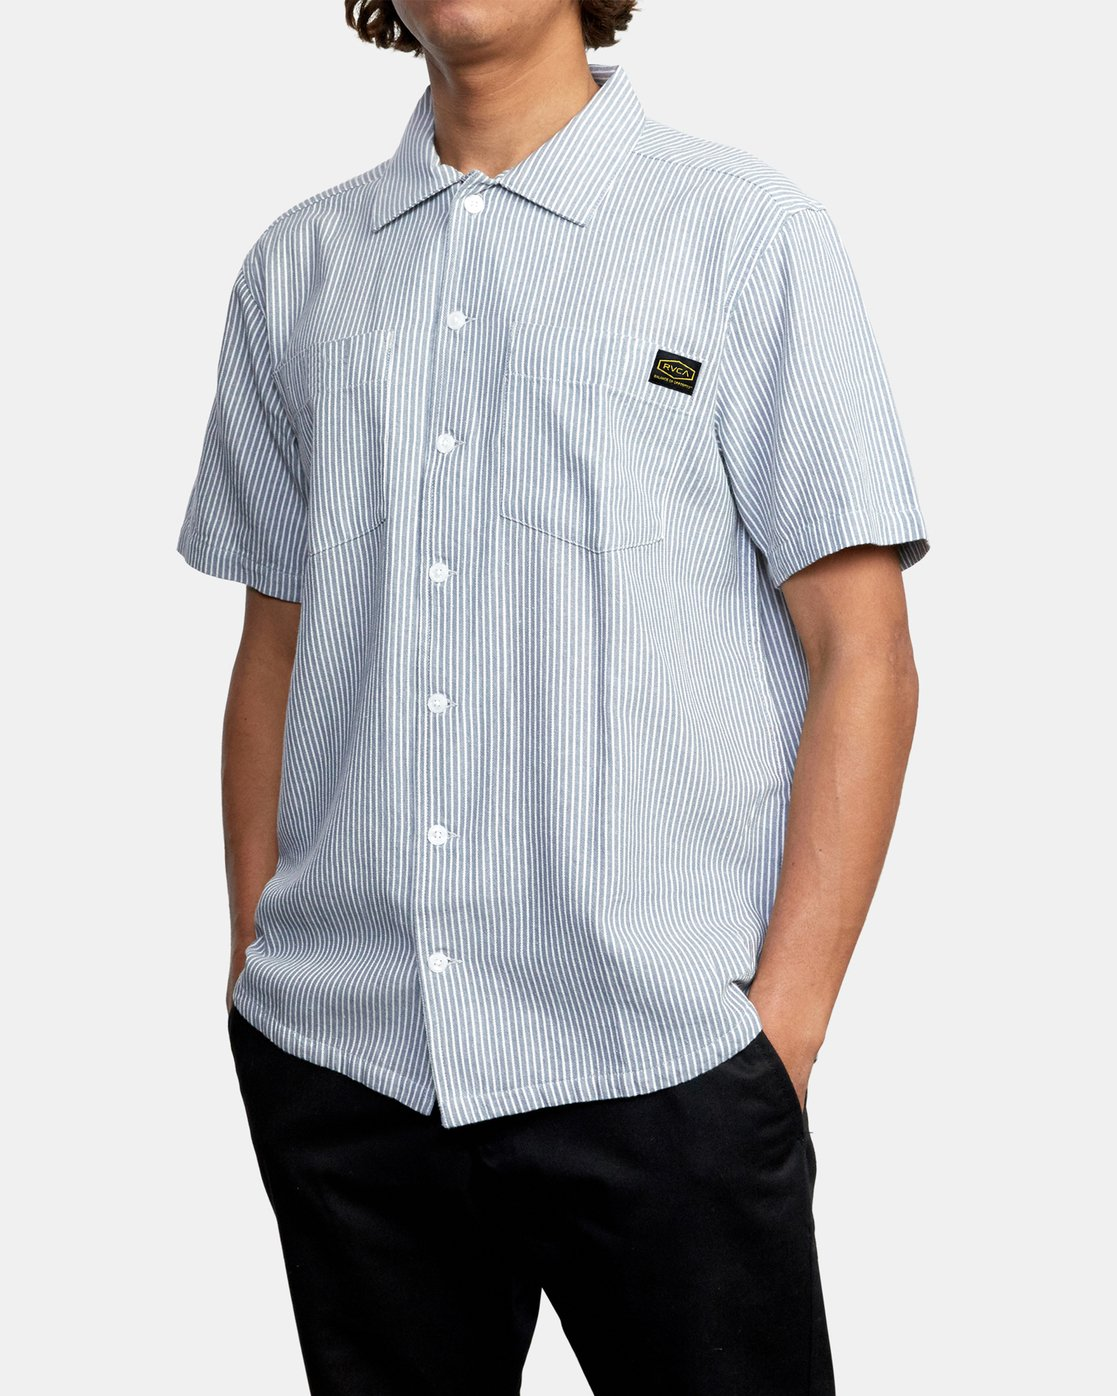 4 DAY SHIFT STRIPE SHORT SLEEVE SHIRT  AVYWT00146 RVCA